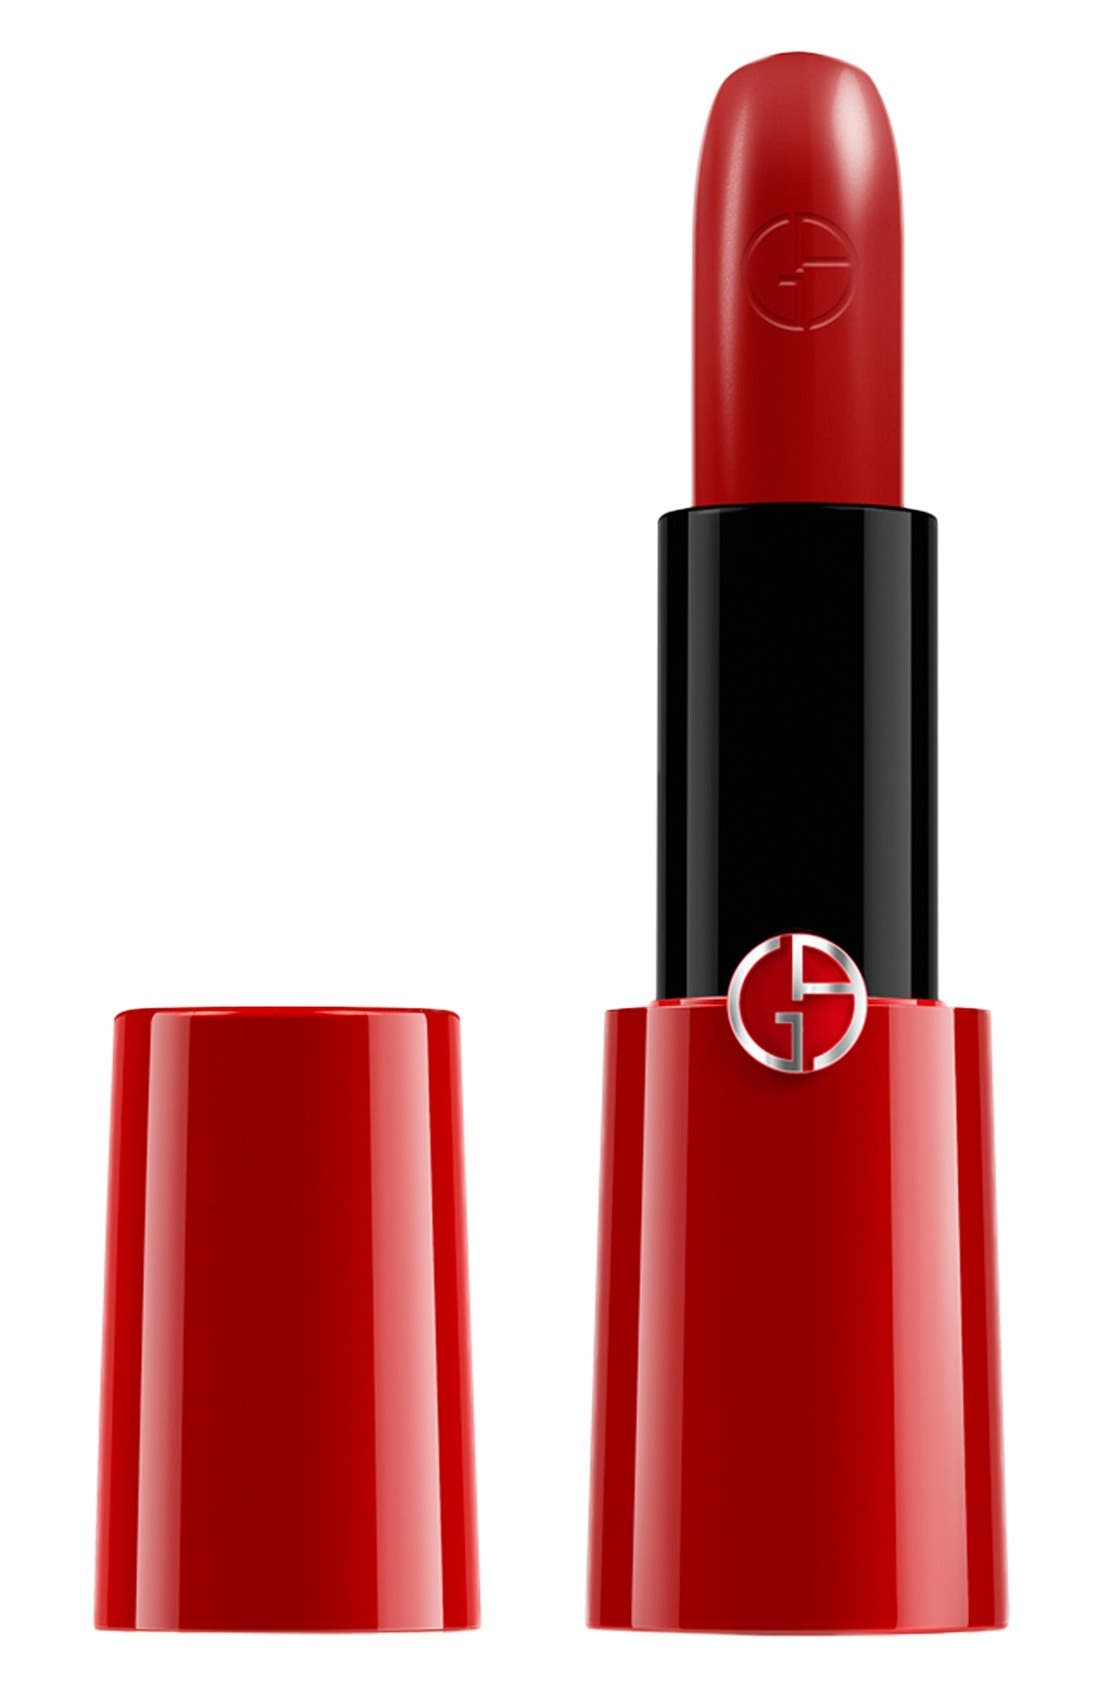 Rouge Ecstasy Lipstick,                             Main thumbnail 1, color,                             402 TEATRO